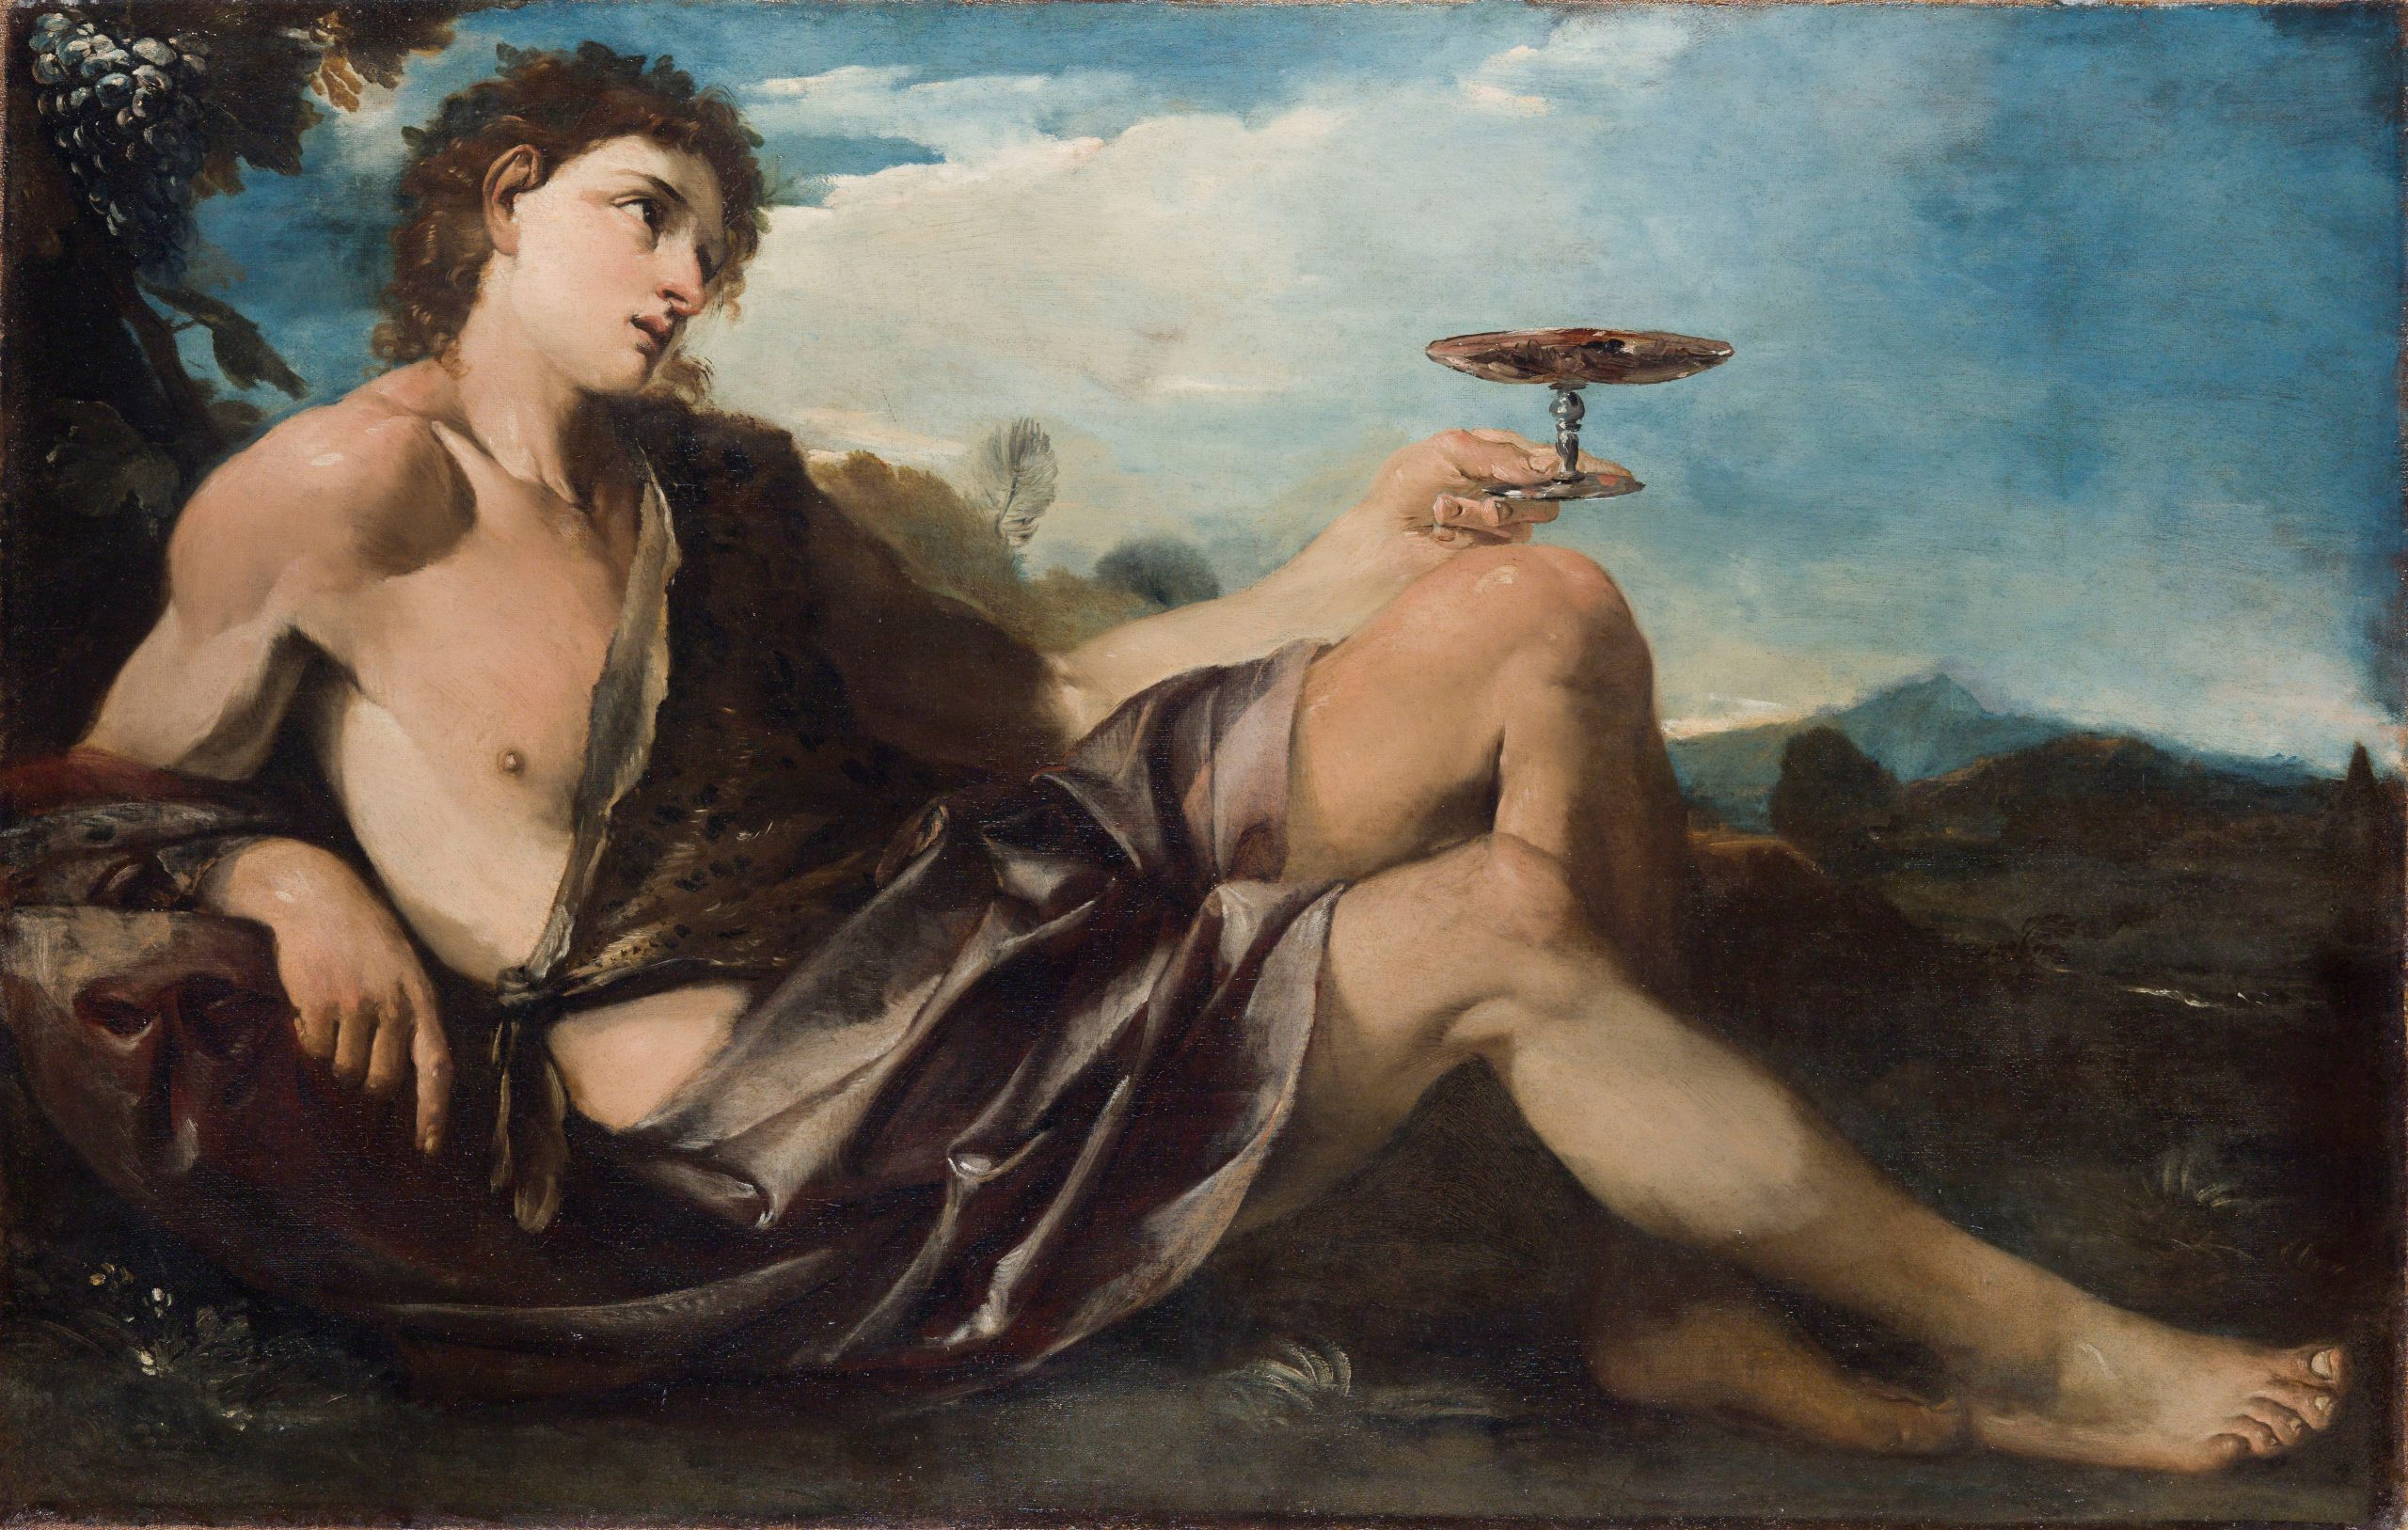 A handsome young man, wearing a toga, reclines and holds a cup